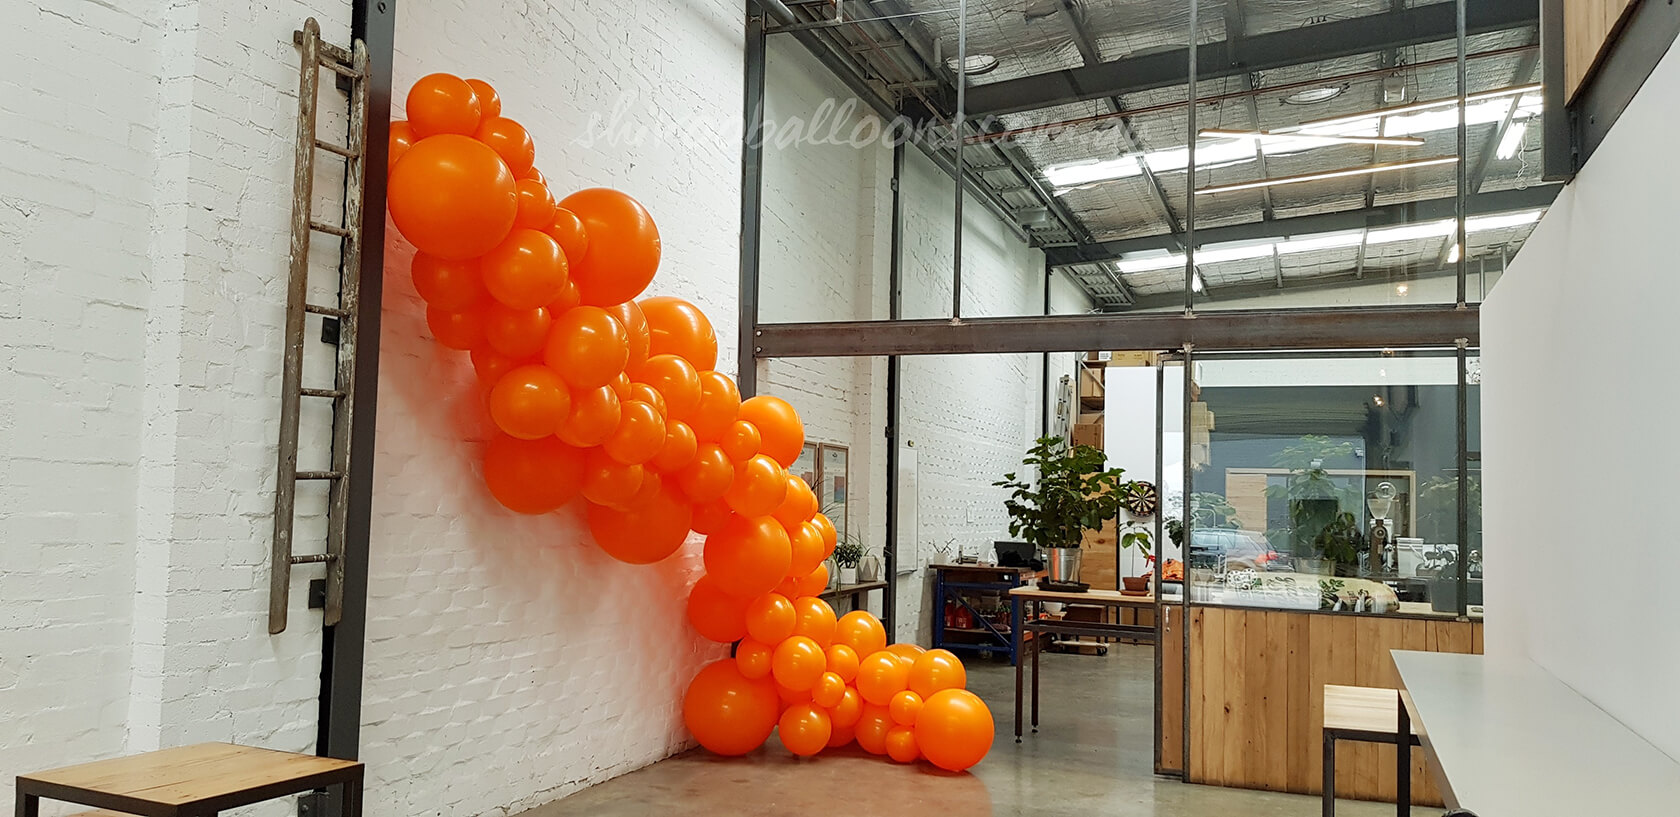 Organic Balloons Pascoe Vale, Melbourne - see our events - custom-made balloon decor Coburg North - shivoo balloons and decor specialists in coburg north